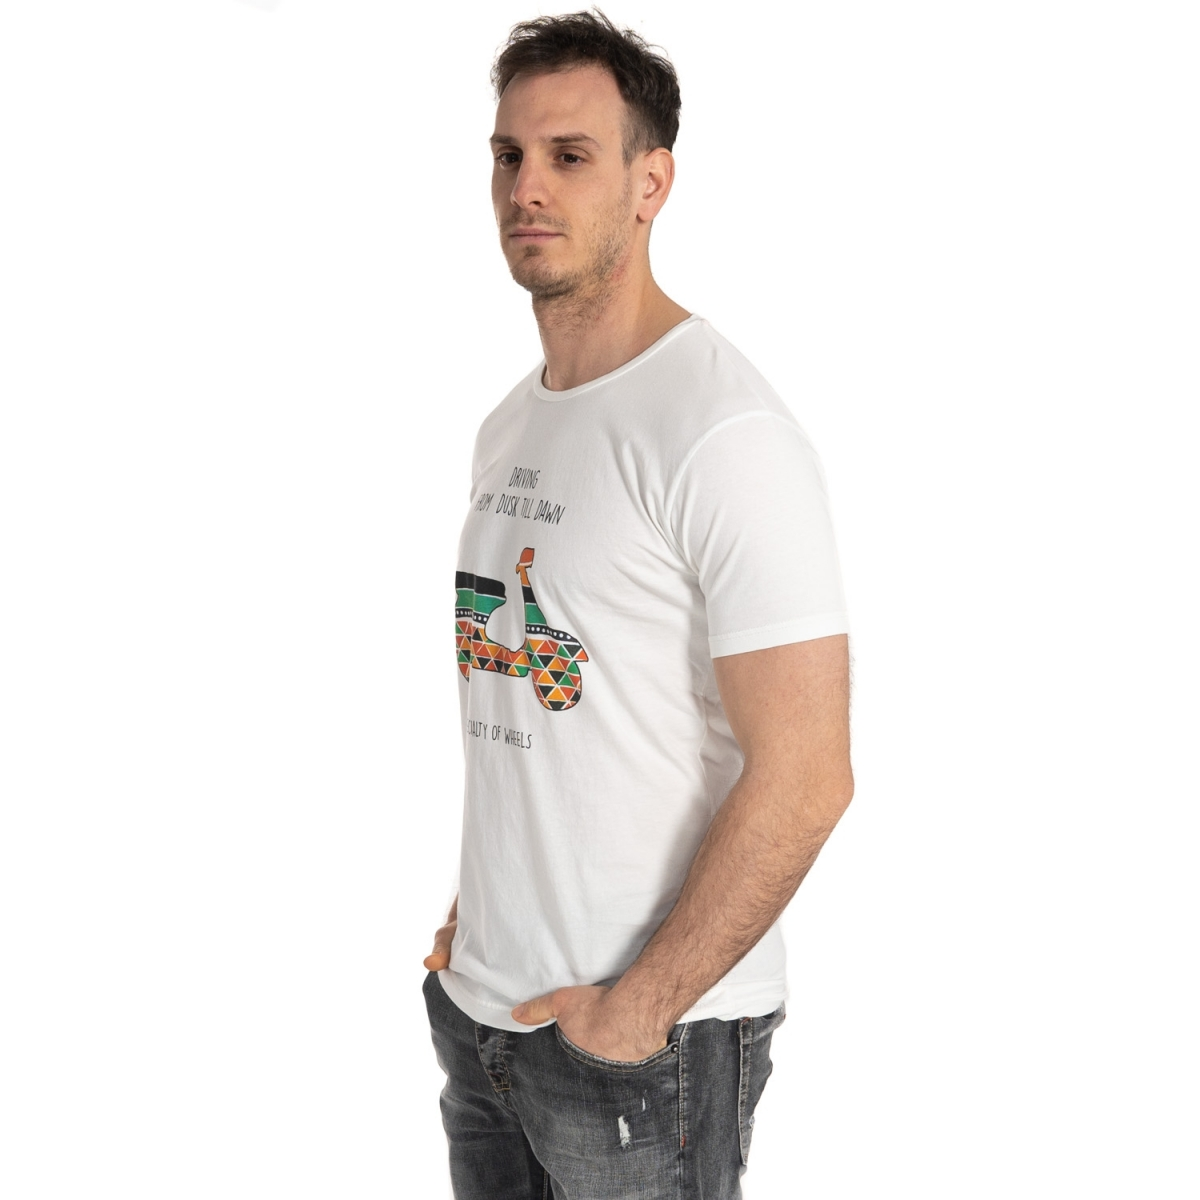 clothing T-shirt men T-Shirt LP23-251 LANDEK PARK Cafedelmar Shop